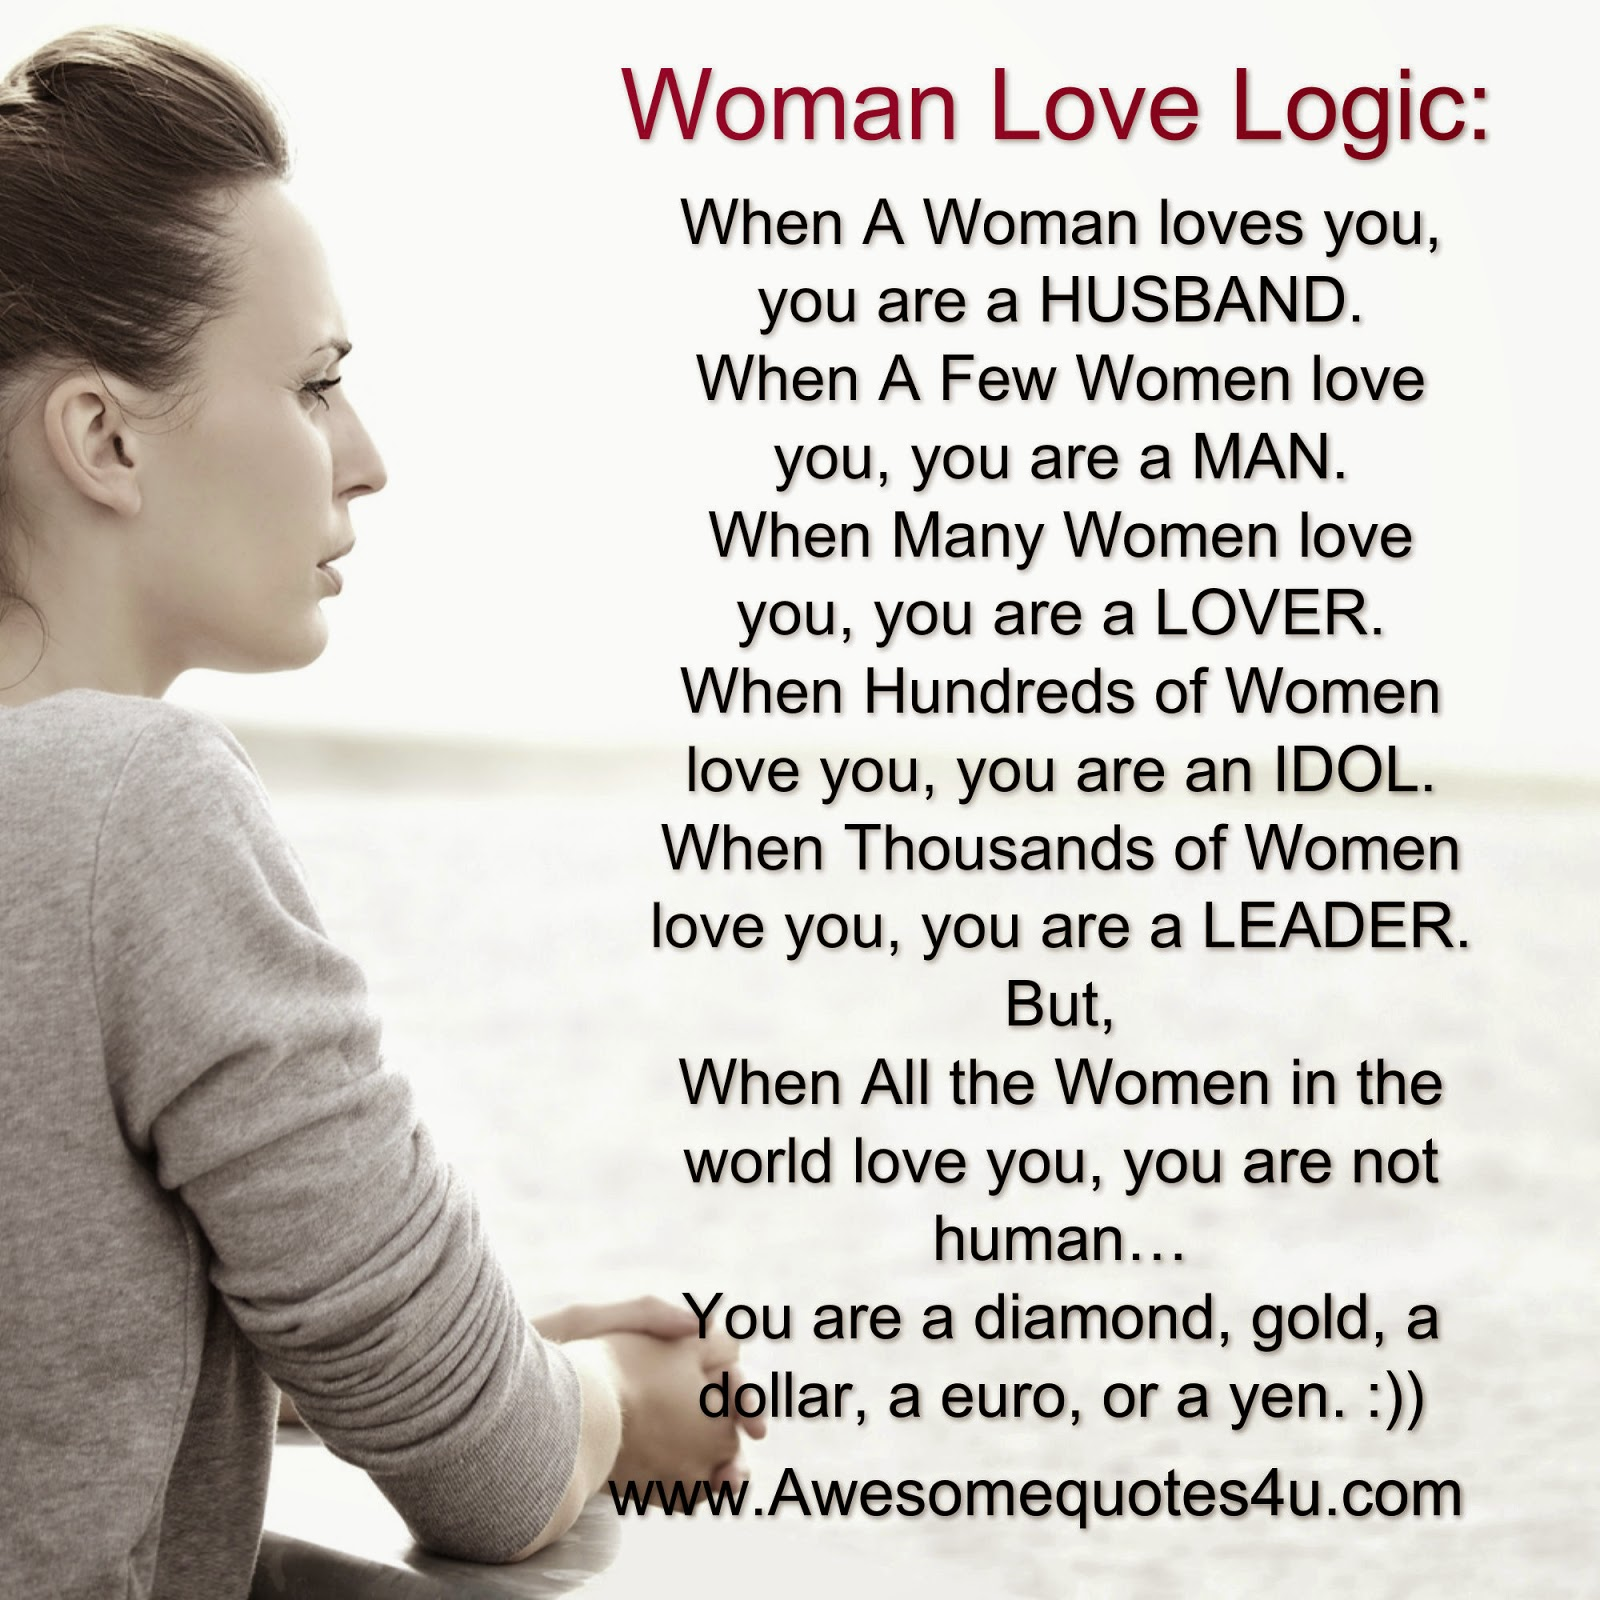 Women Logic Quotes. QuotesGram